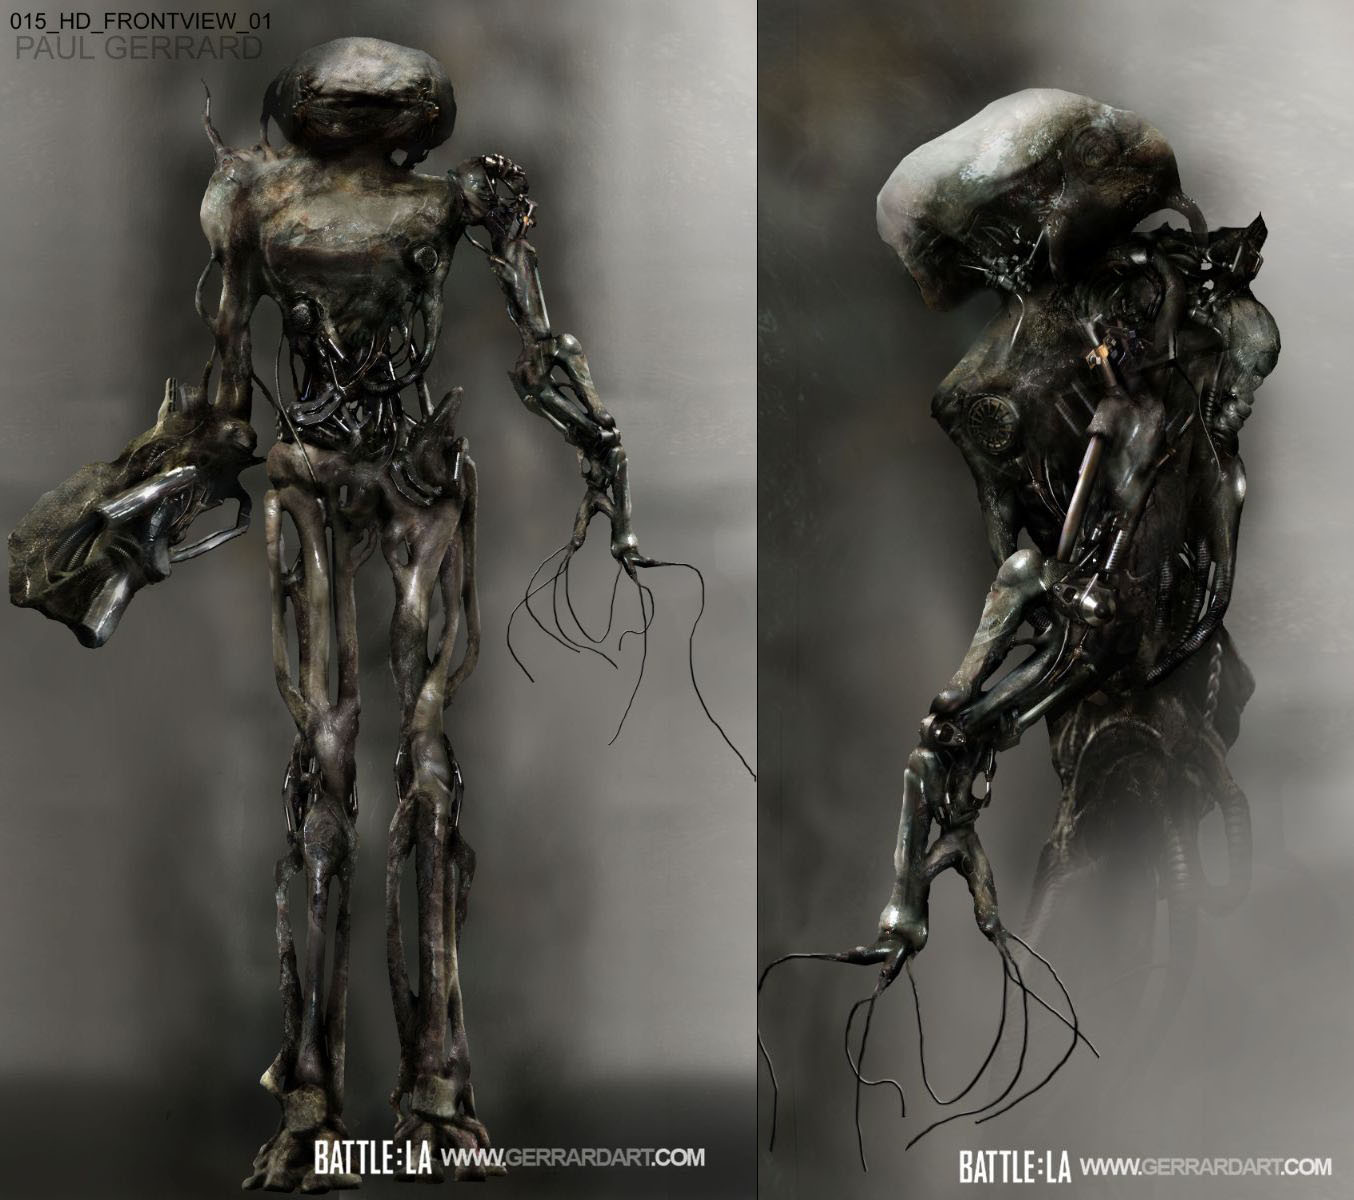 BATTLE LA ALIEN DESIGN